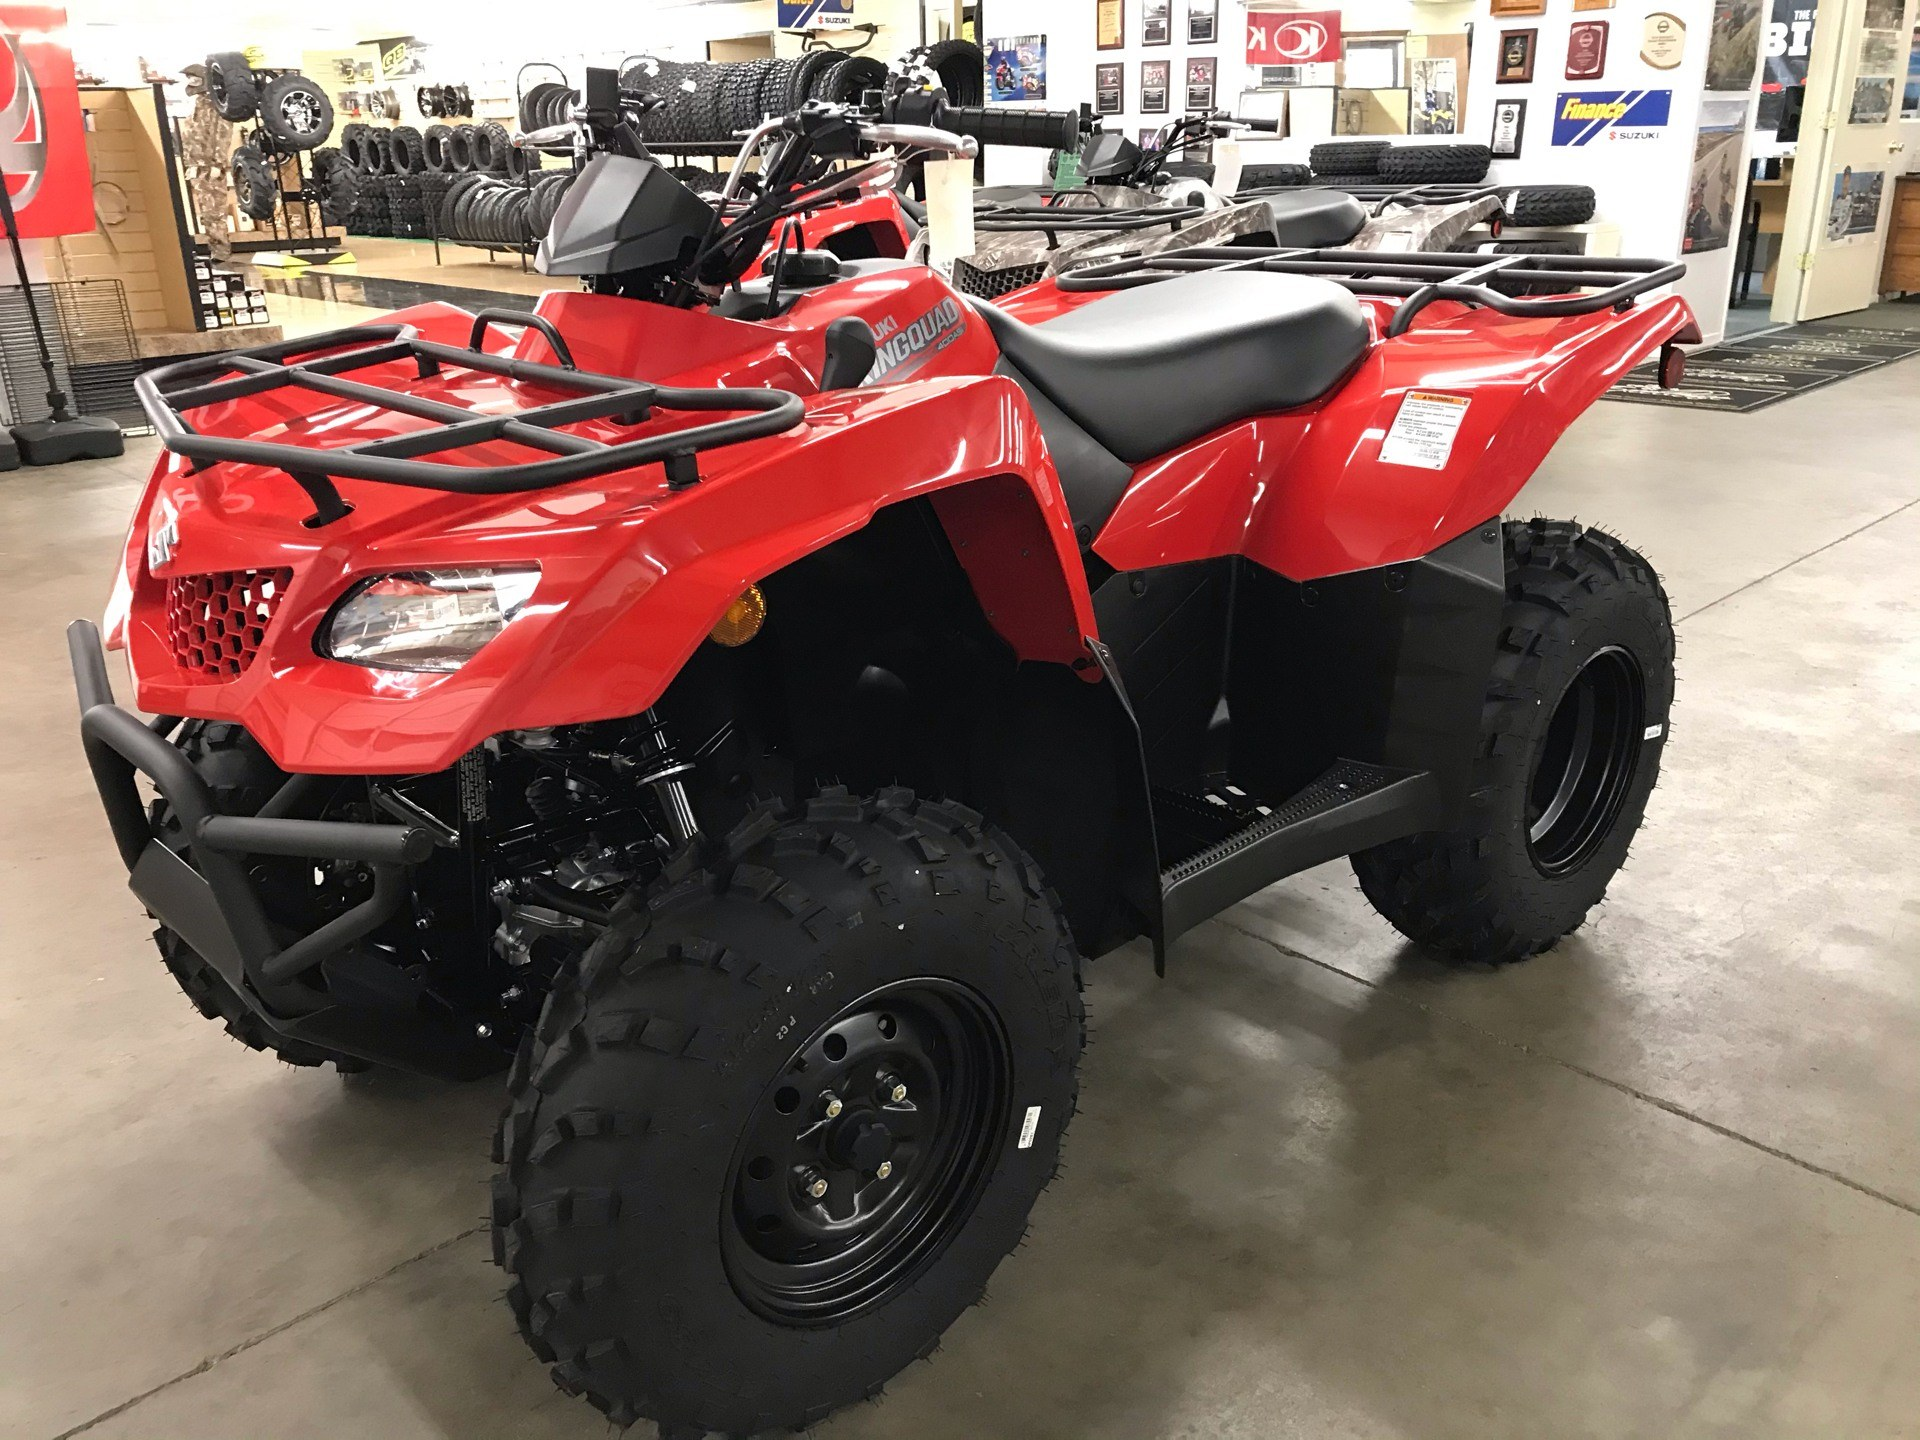 2021 Suzuki KingQuad 400ASi in Sanford, North Carolina - Photo 5